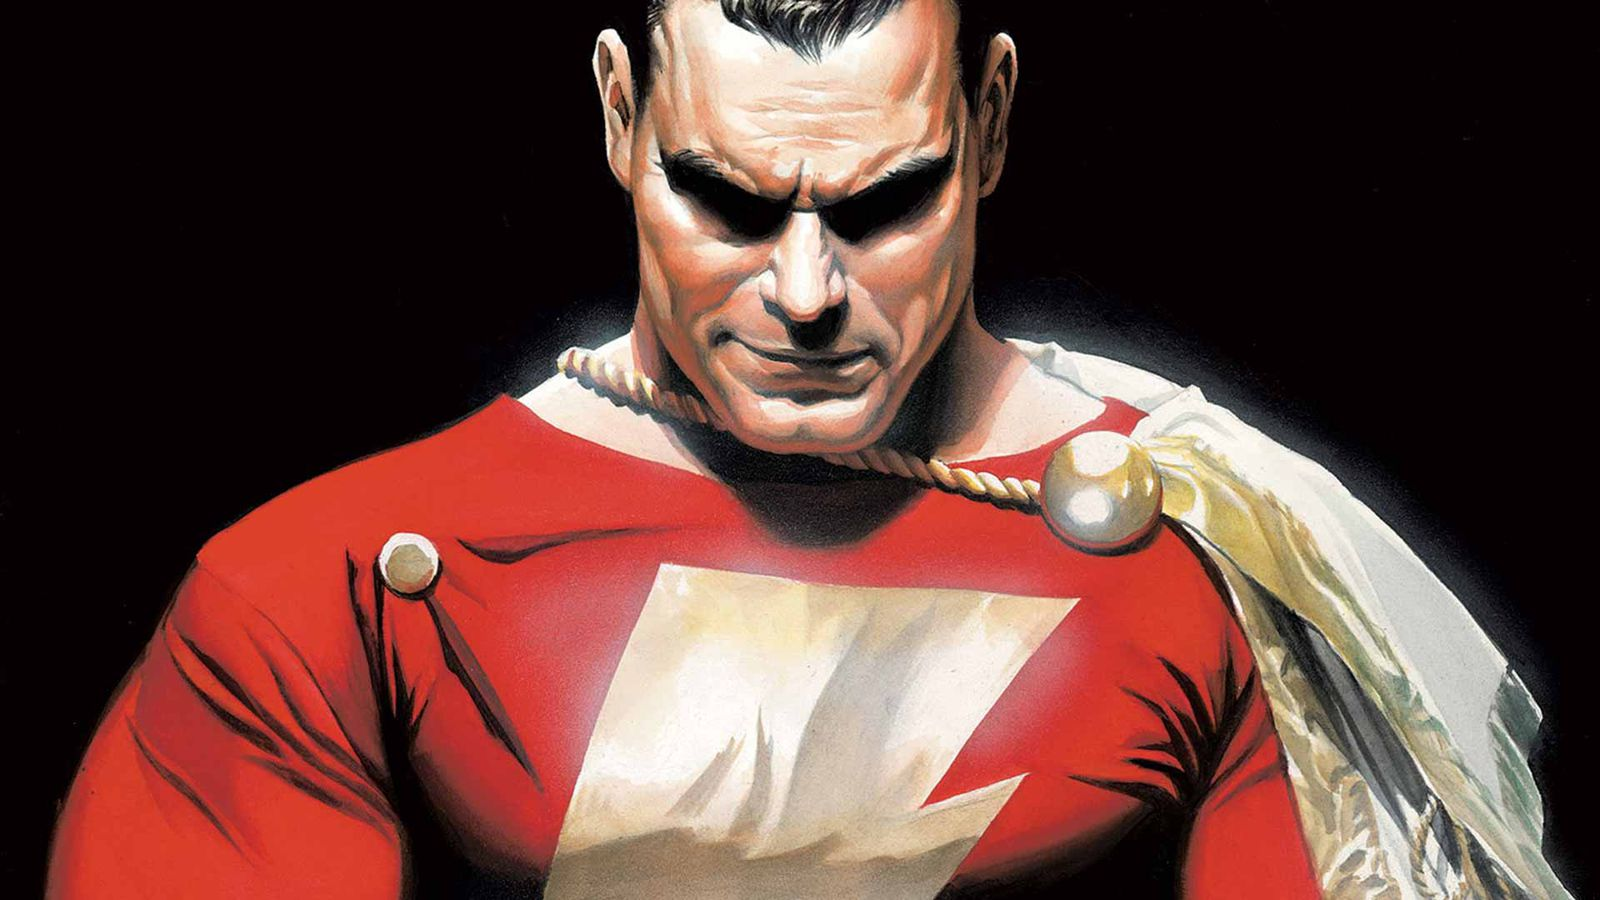 Shazam will be the next DC Universe movie after Justice League and Aquaman